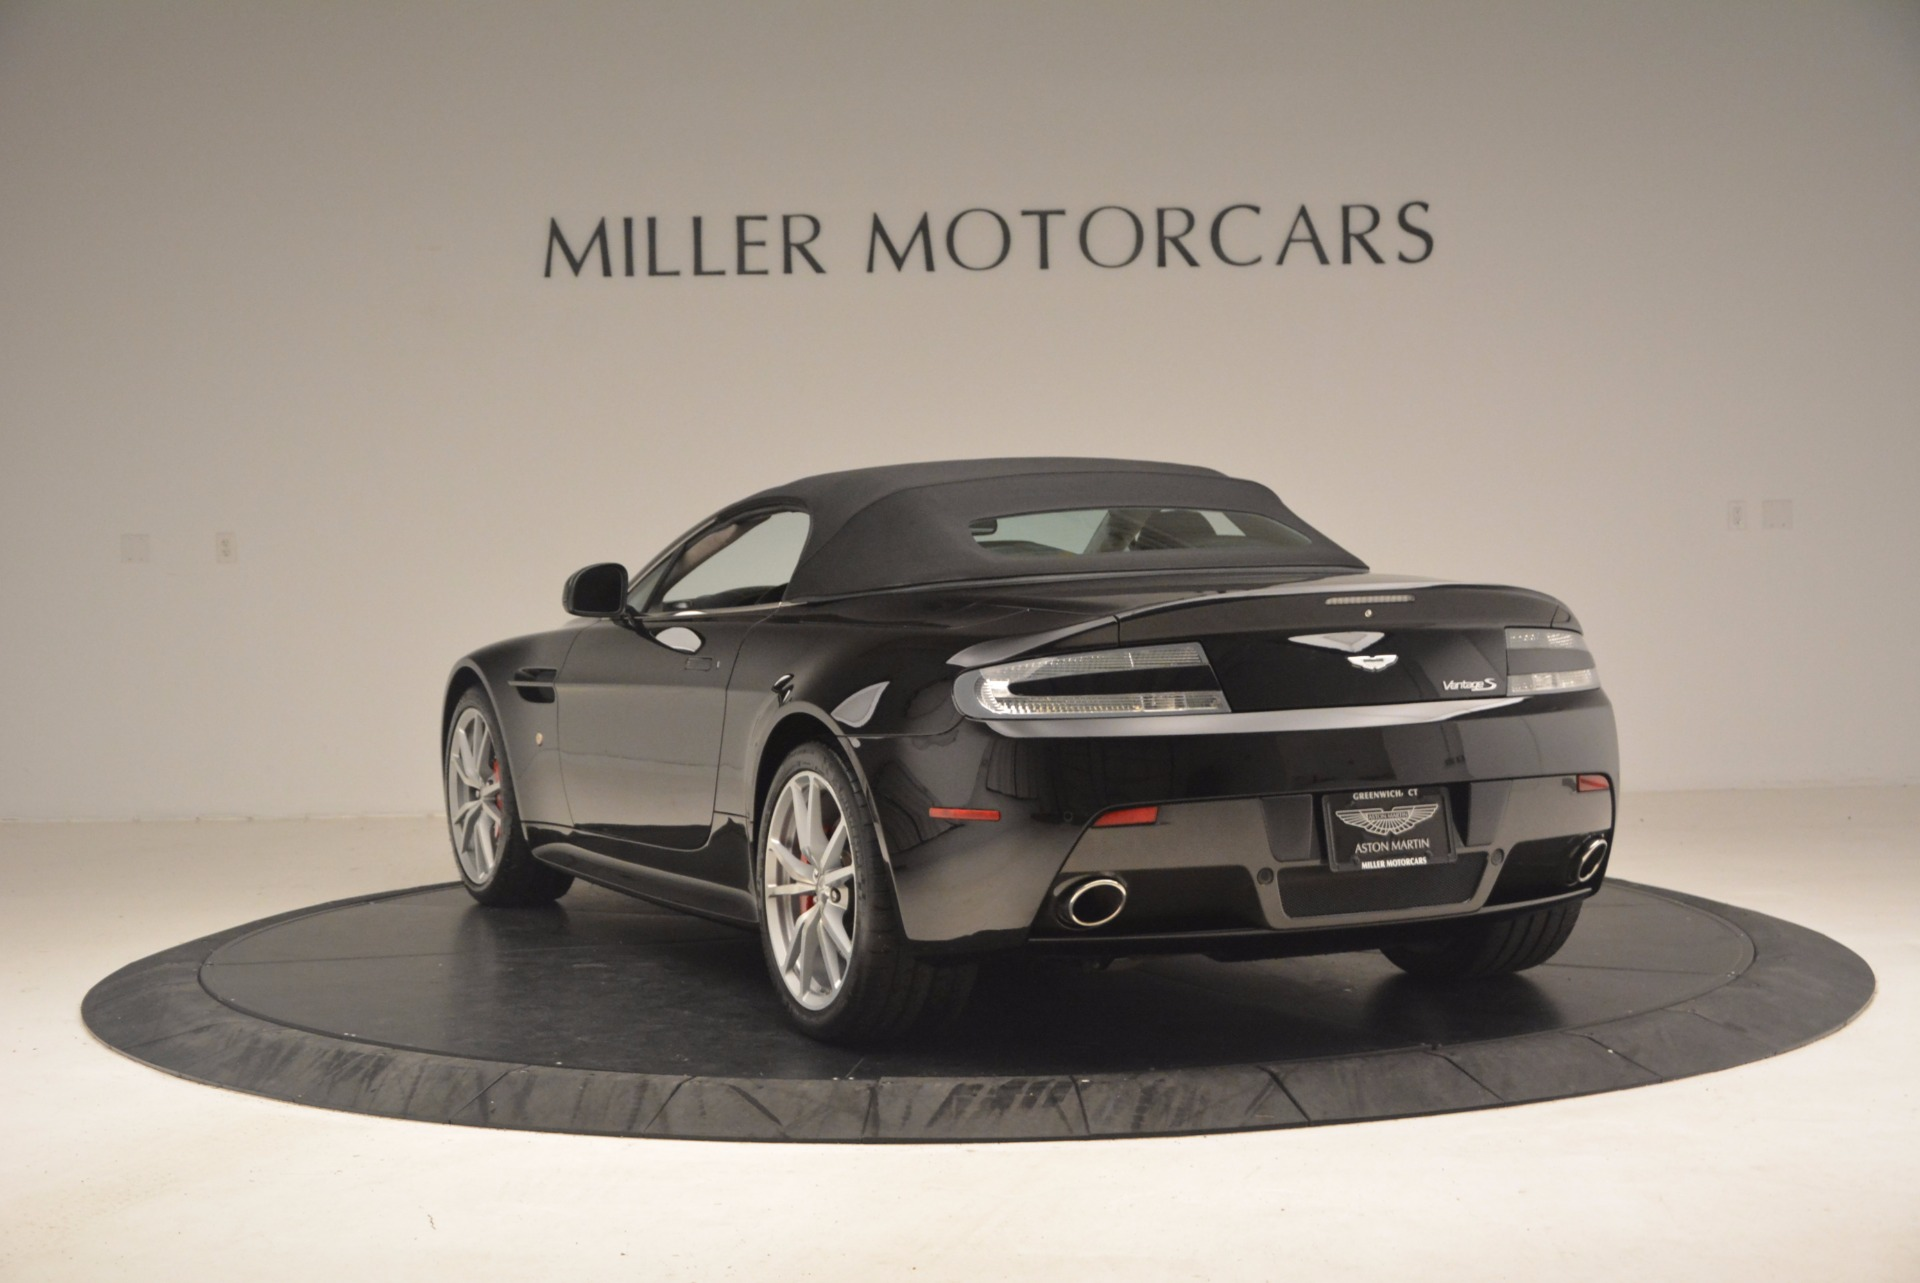 Used 2012 Aston Martin V8 Vantage S Roadster For Sale In Westport, CT 1181_p17